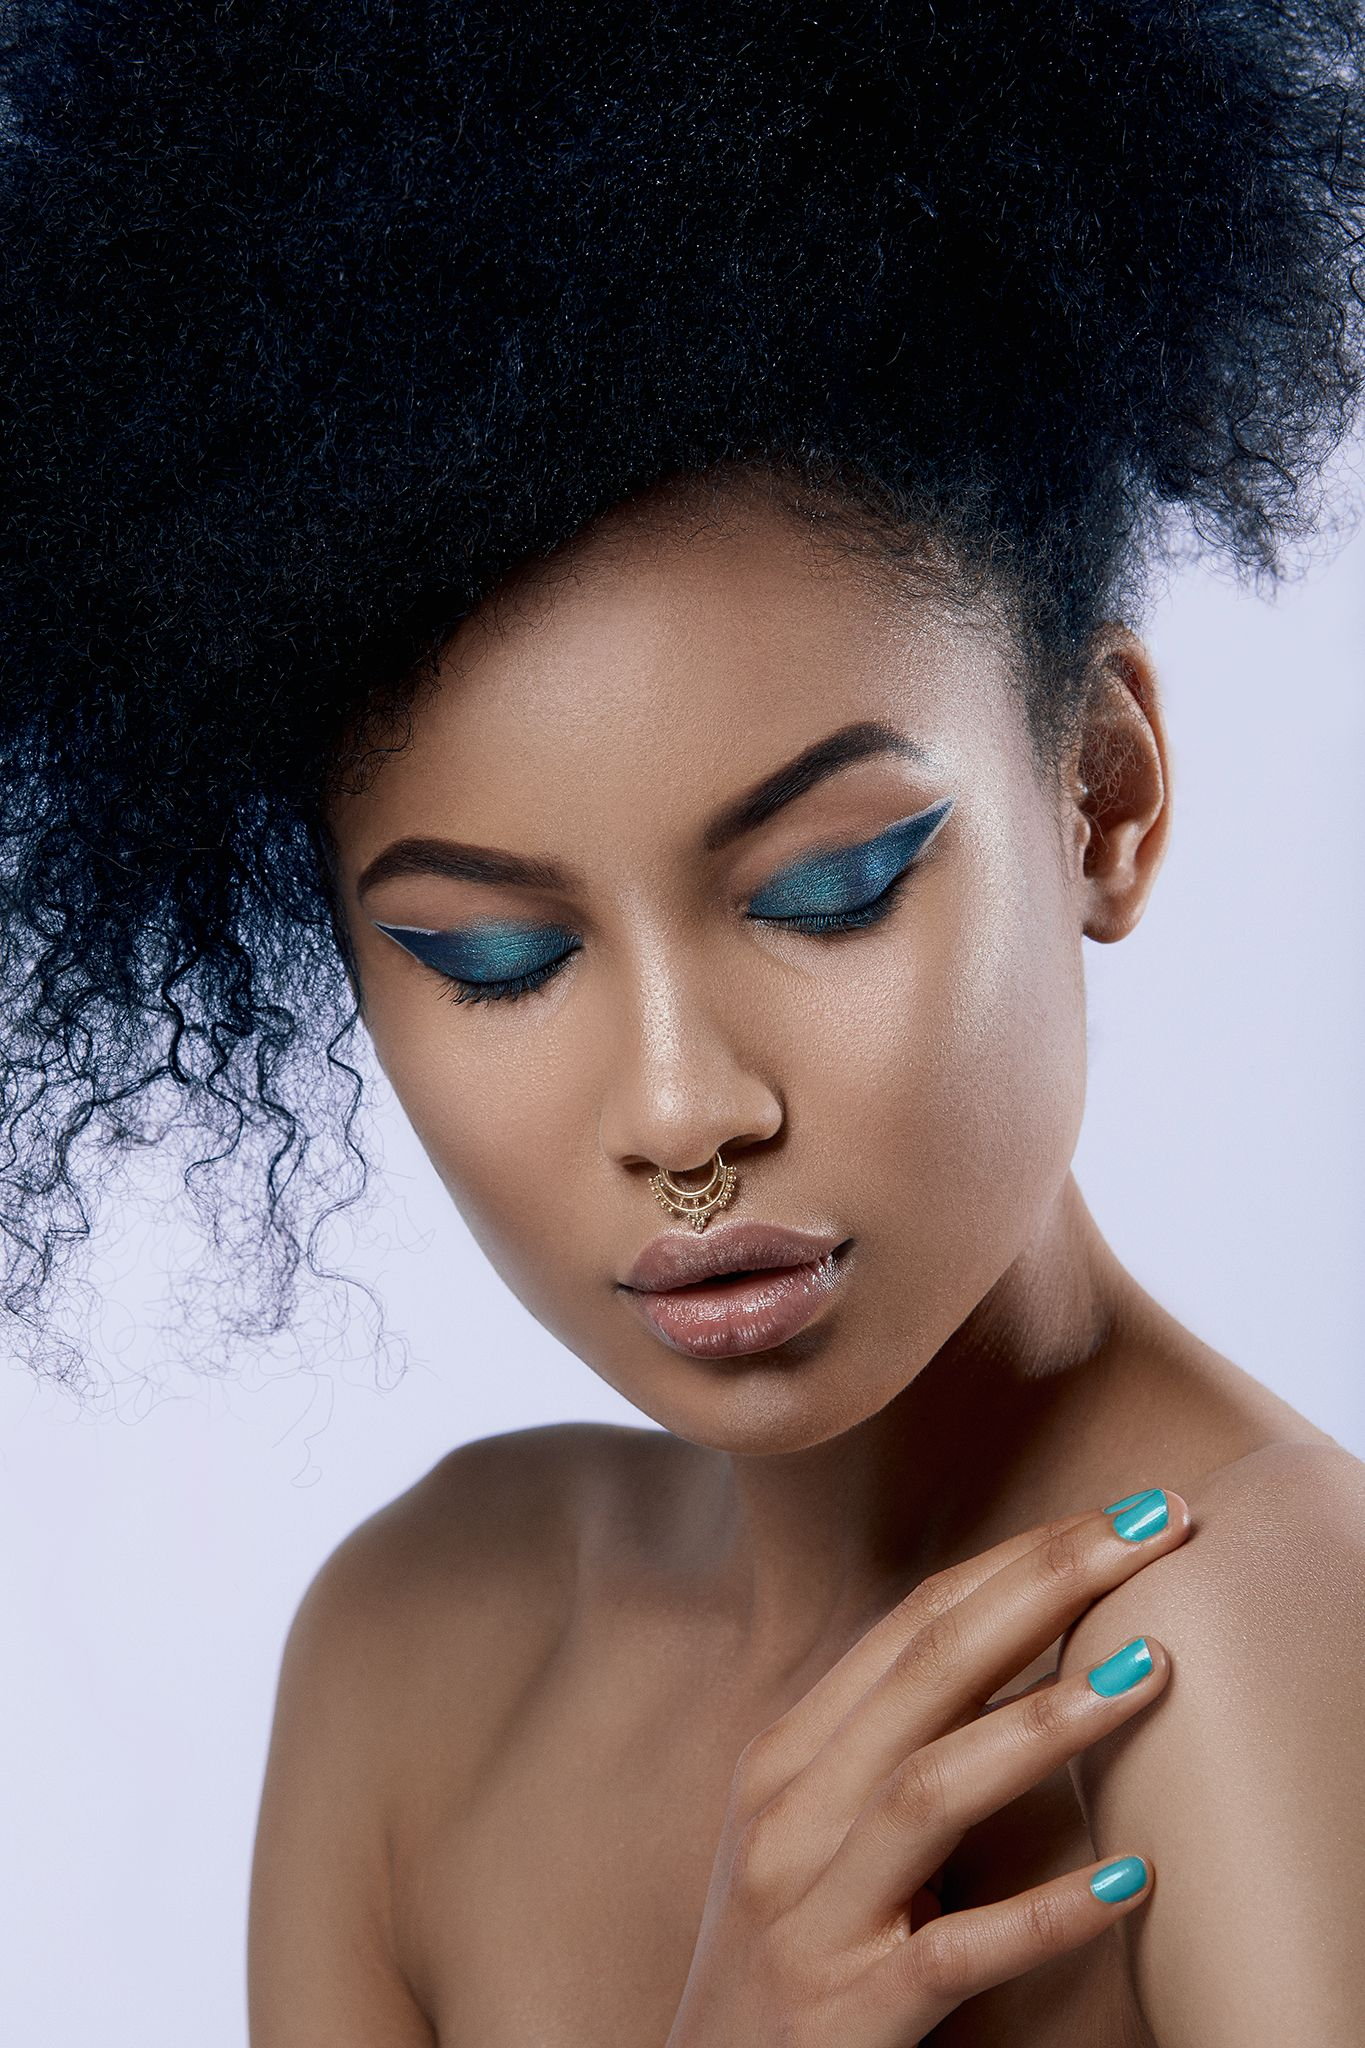 Pin by Nikki's Beautique on Editorial makeup by Nikki's